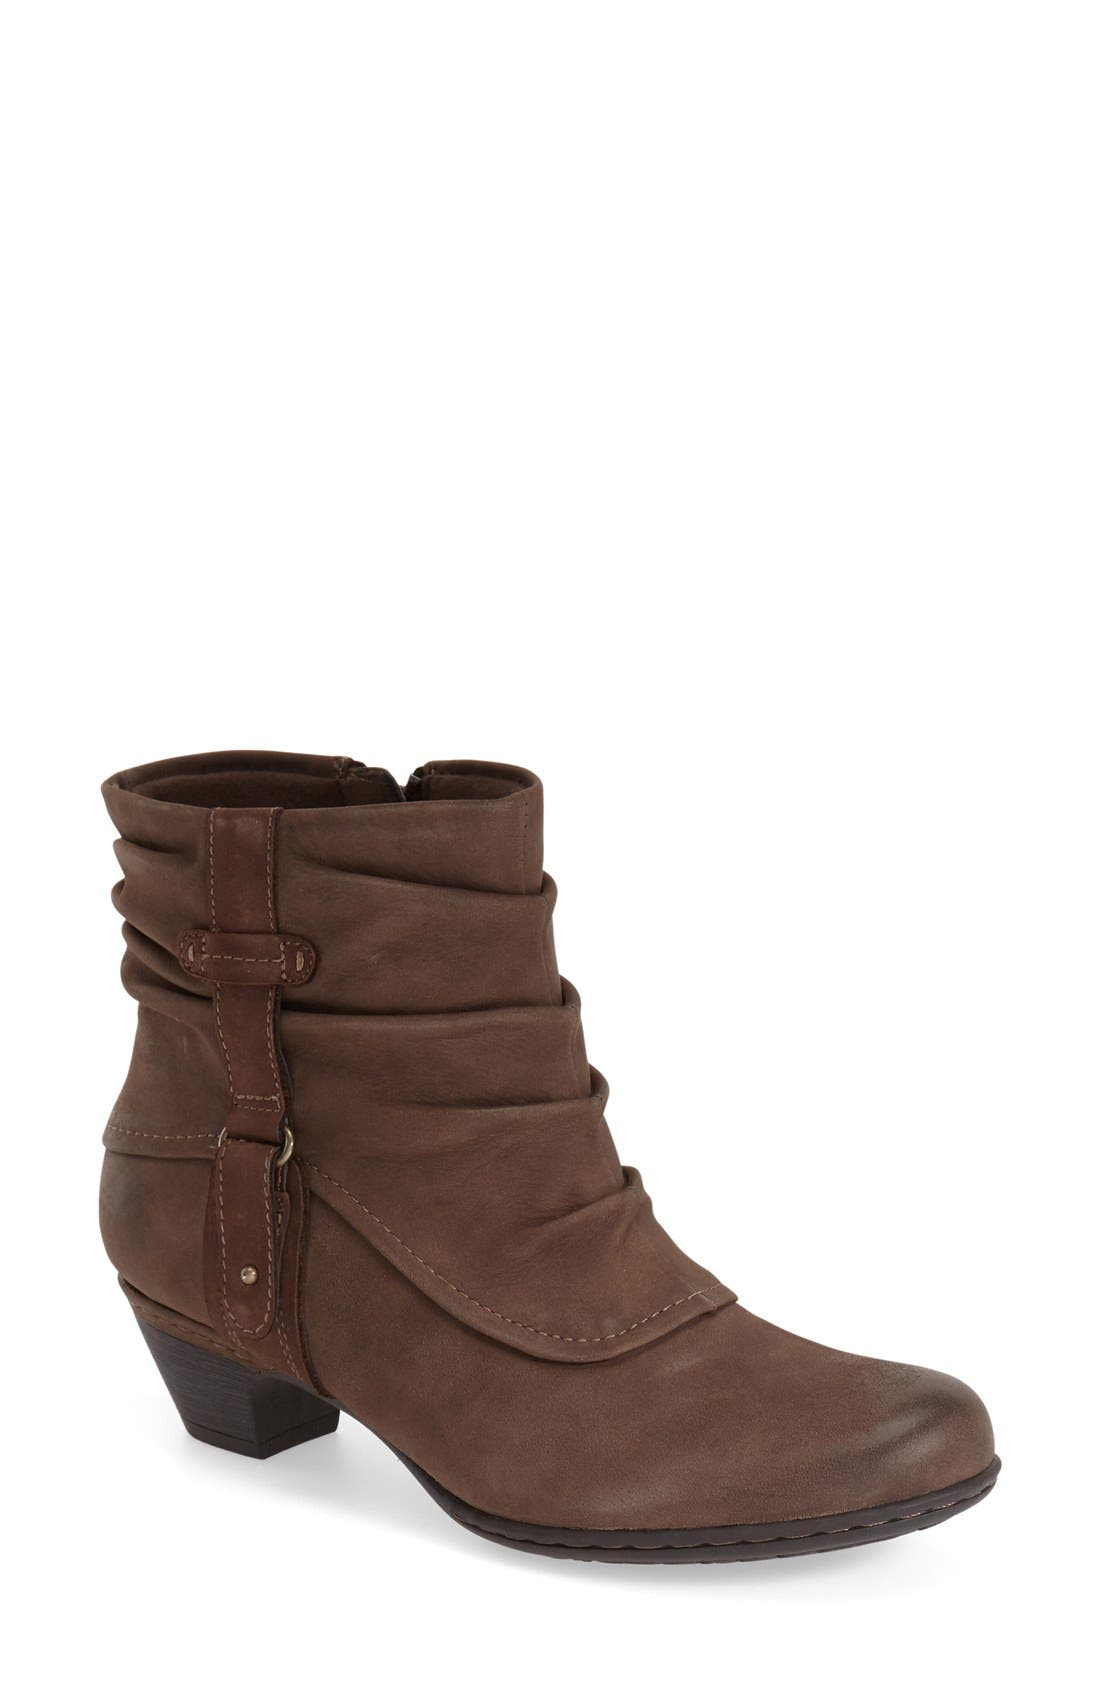 Rockport Cobb Hill 'Alexandra' Boot